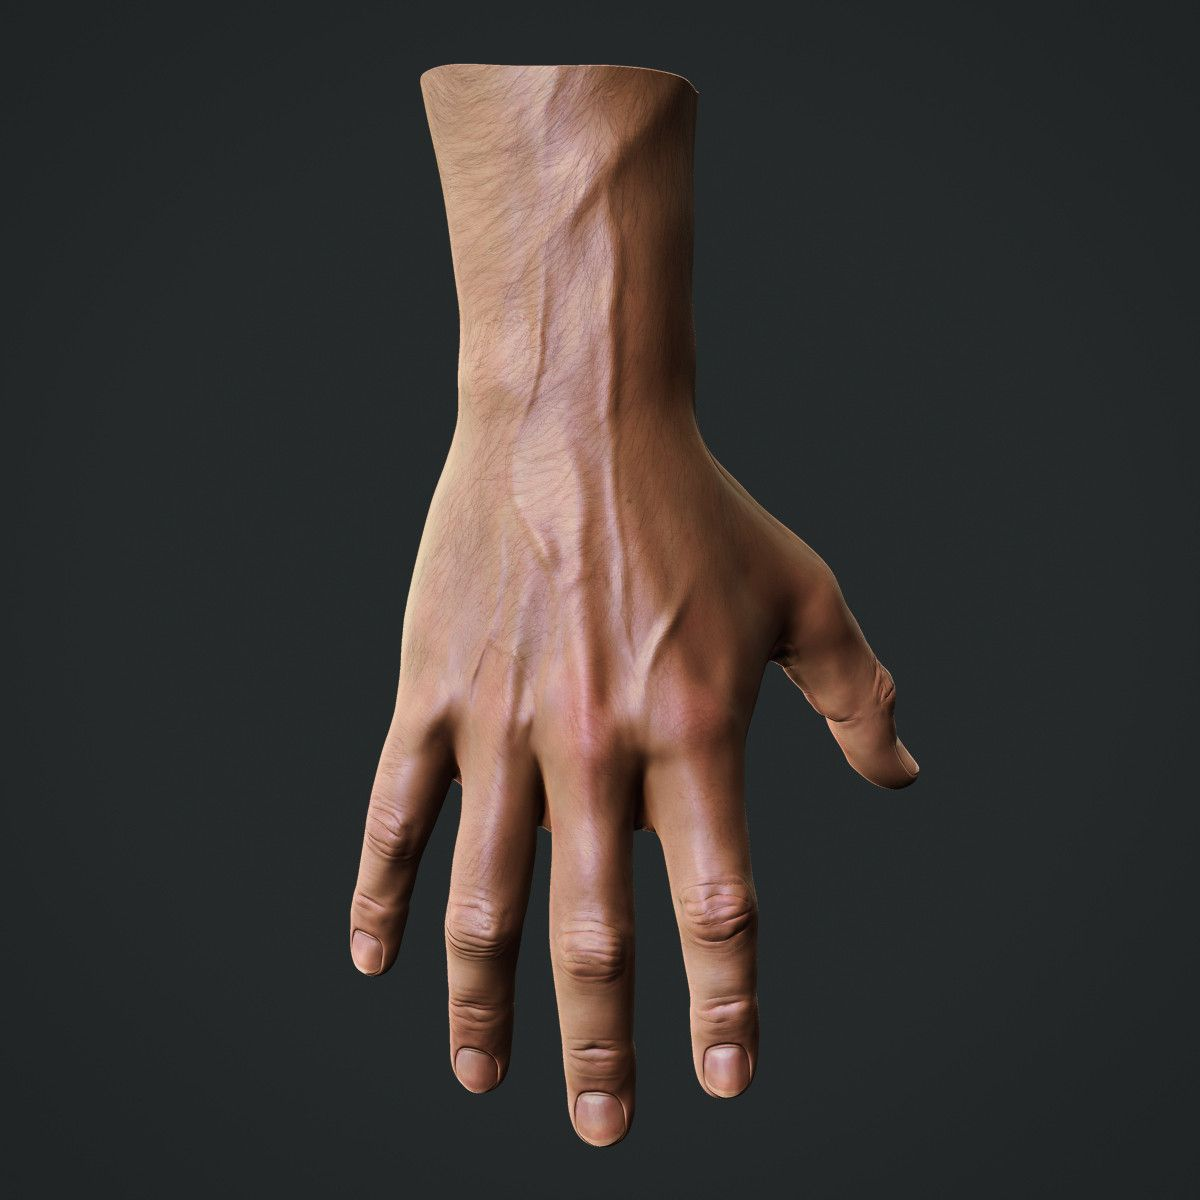 Male hand reference   Male body reference   Pinterest ...